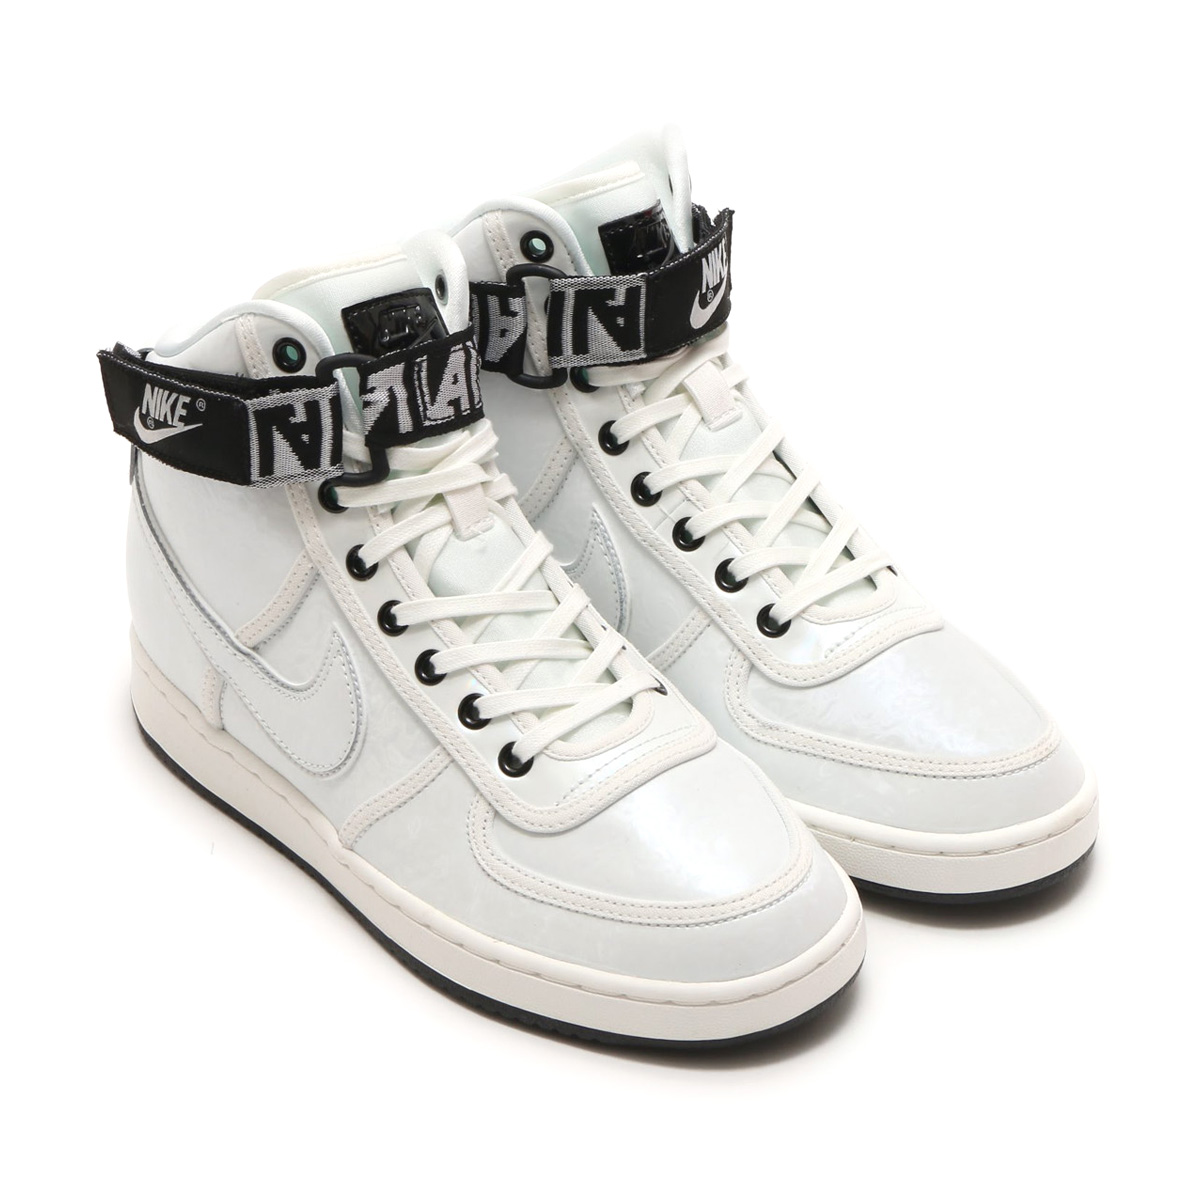 timeless design a4131 9988f NIKE W VANDAL HI LX (Nike women Vandal high LX) (SUMMIT WHITESUMMIT  WHITE-BLACK)18SP-S